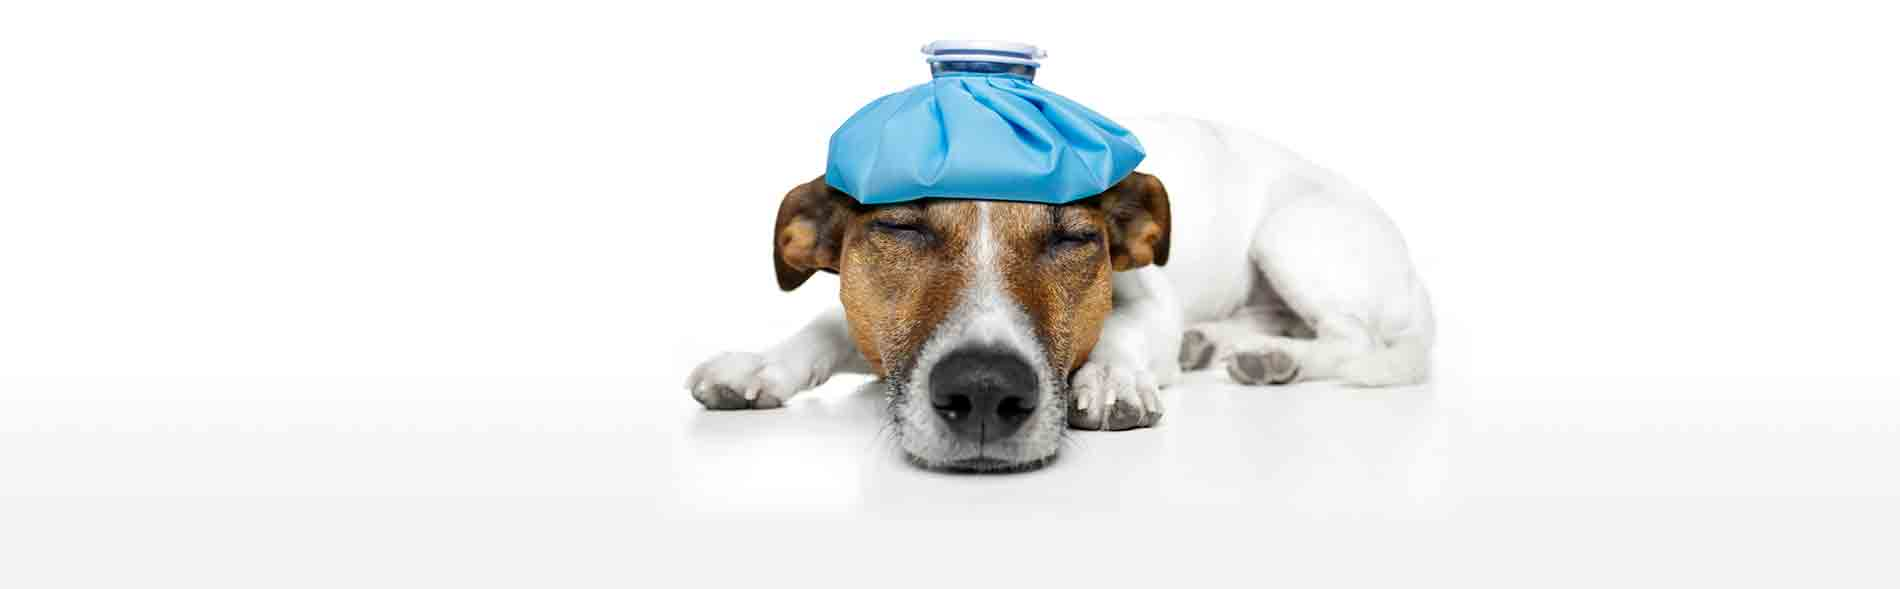 EXAMINATIONS TO DIAGNOSE AND TREAT DISEASES IN SICK OR INJURED ANIMALS